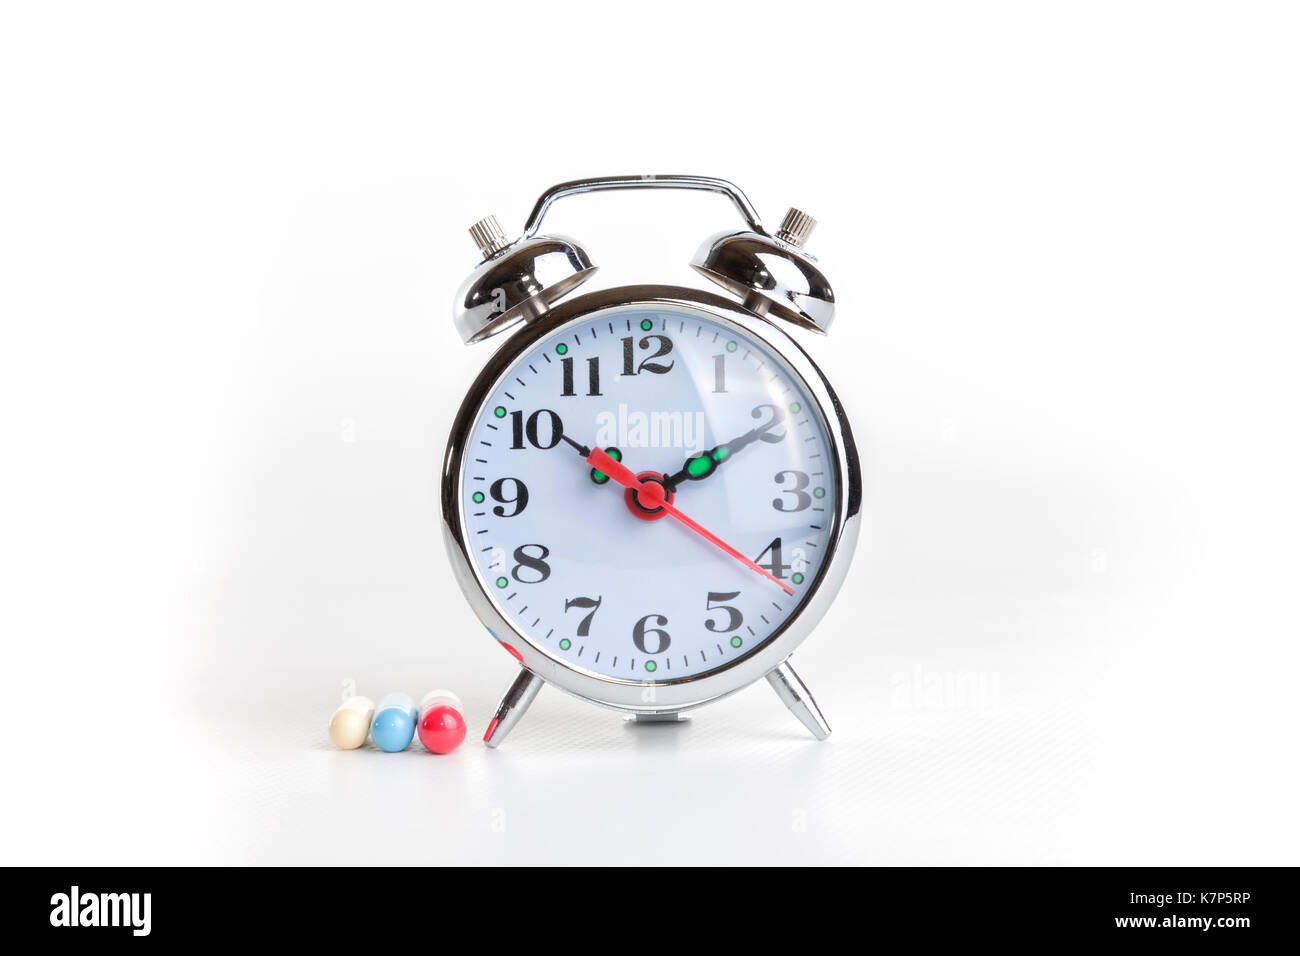 Medicines and alarm clock on white background. - Stock Image